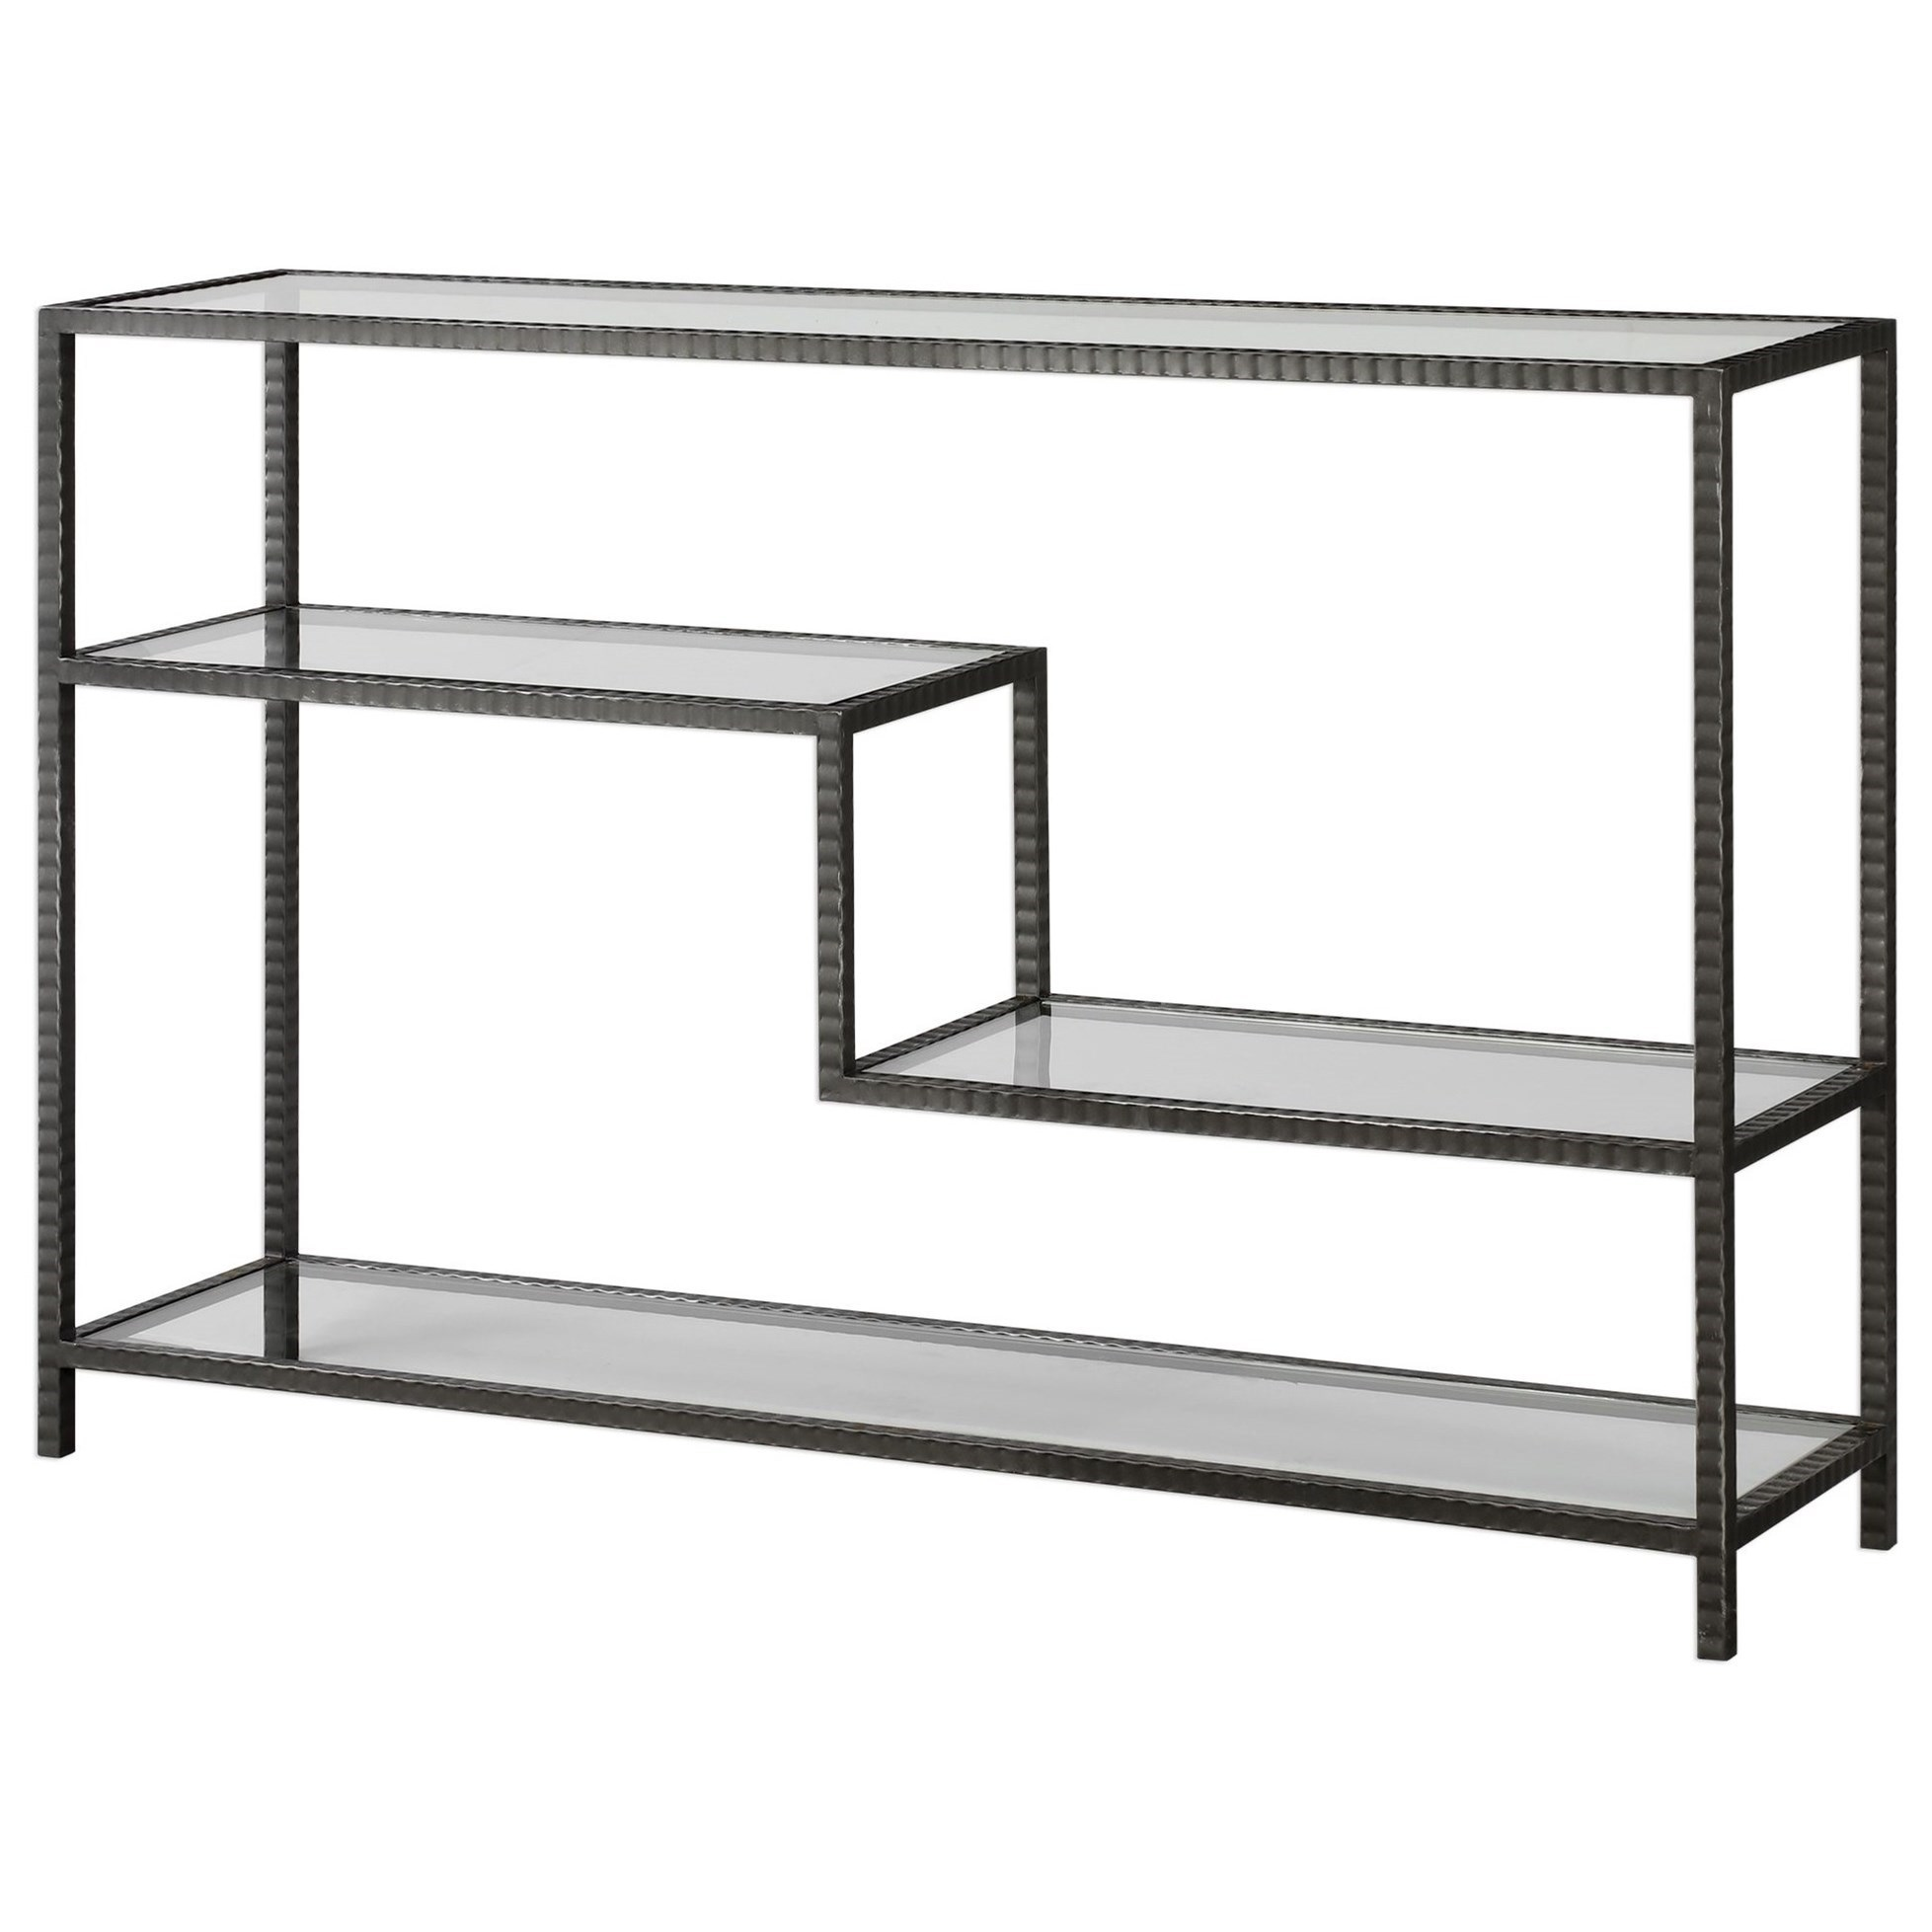 Accent Furniture - Occasional Tables Leo Industrial Console Table by Uttermost at Upper Room Home Furnishings